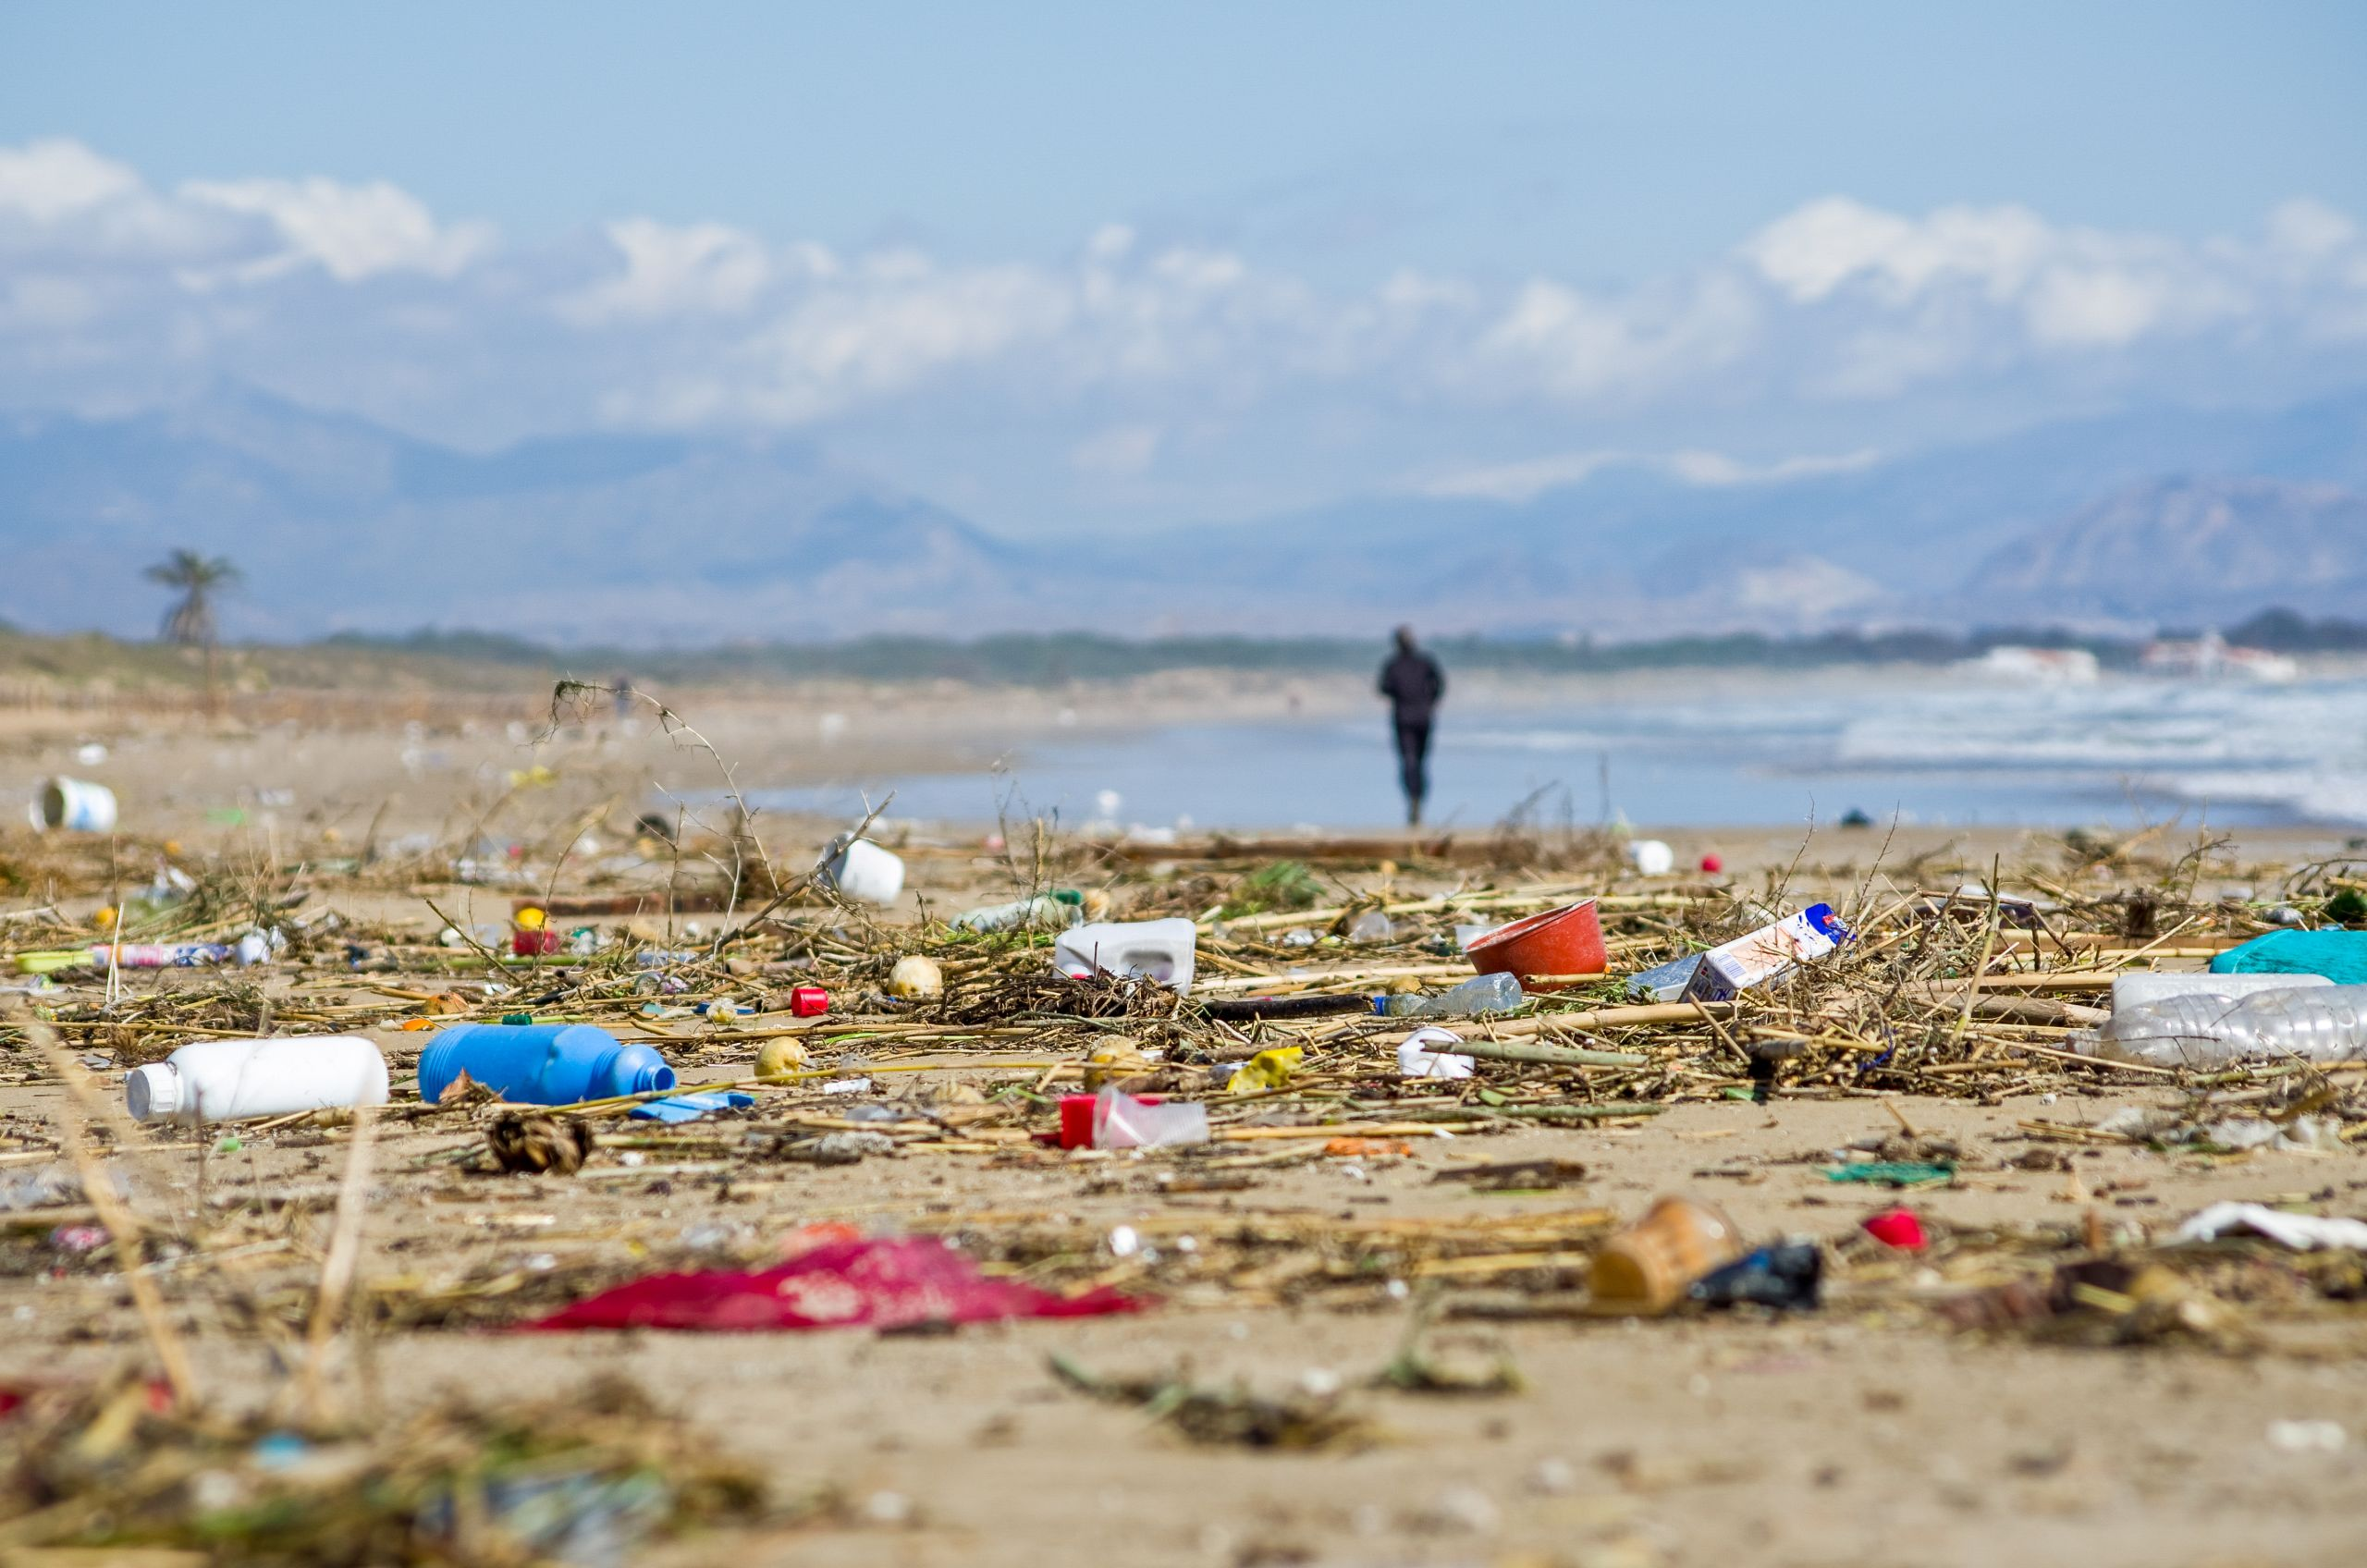 Sea shore littered by trash